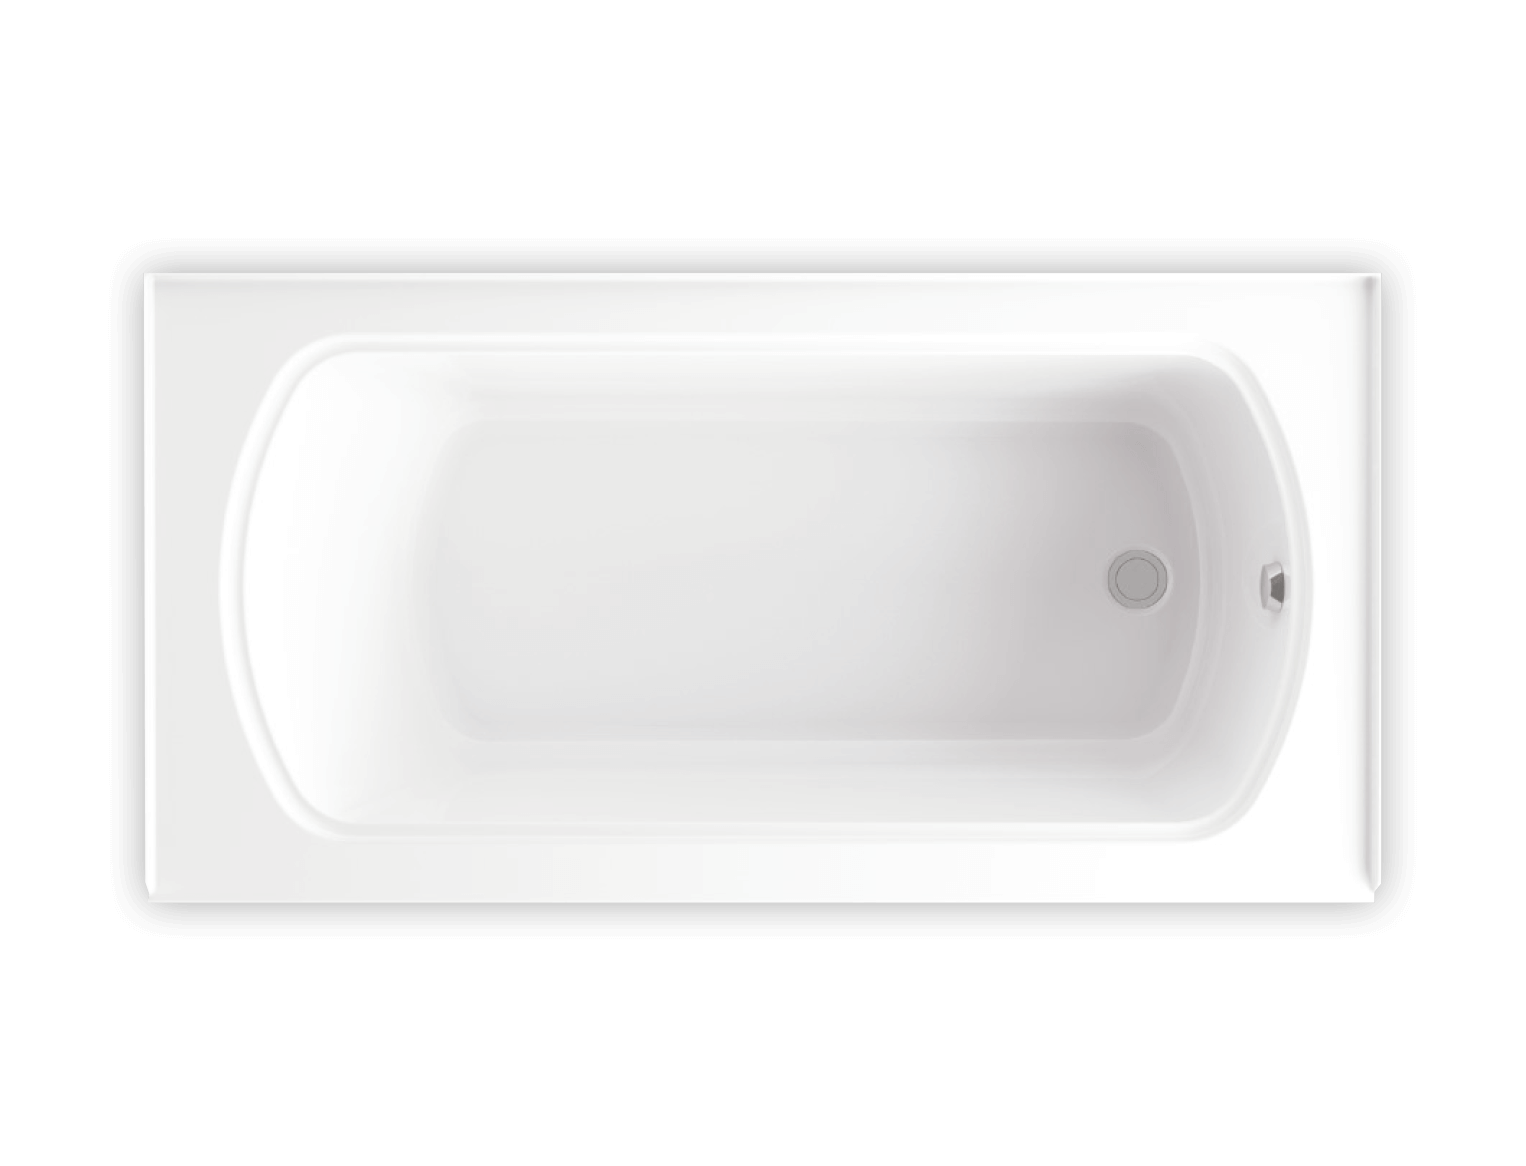 Bainultra Meridian® DUO alcove air jet bathtub for your modern bathroom